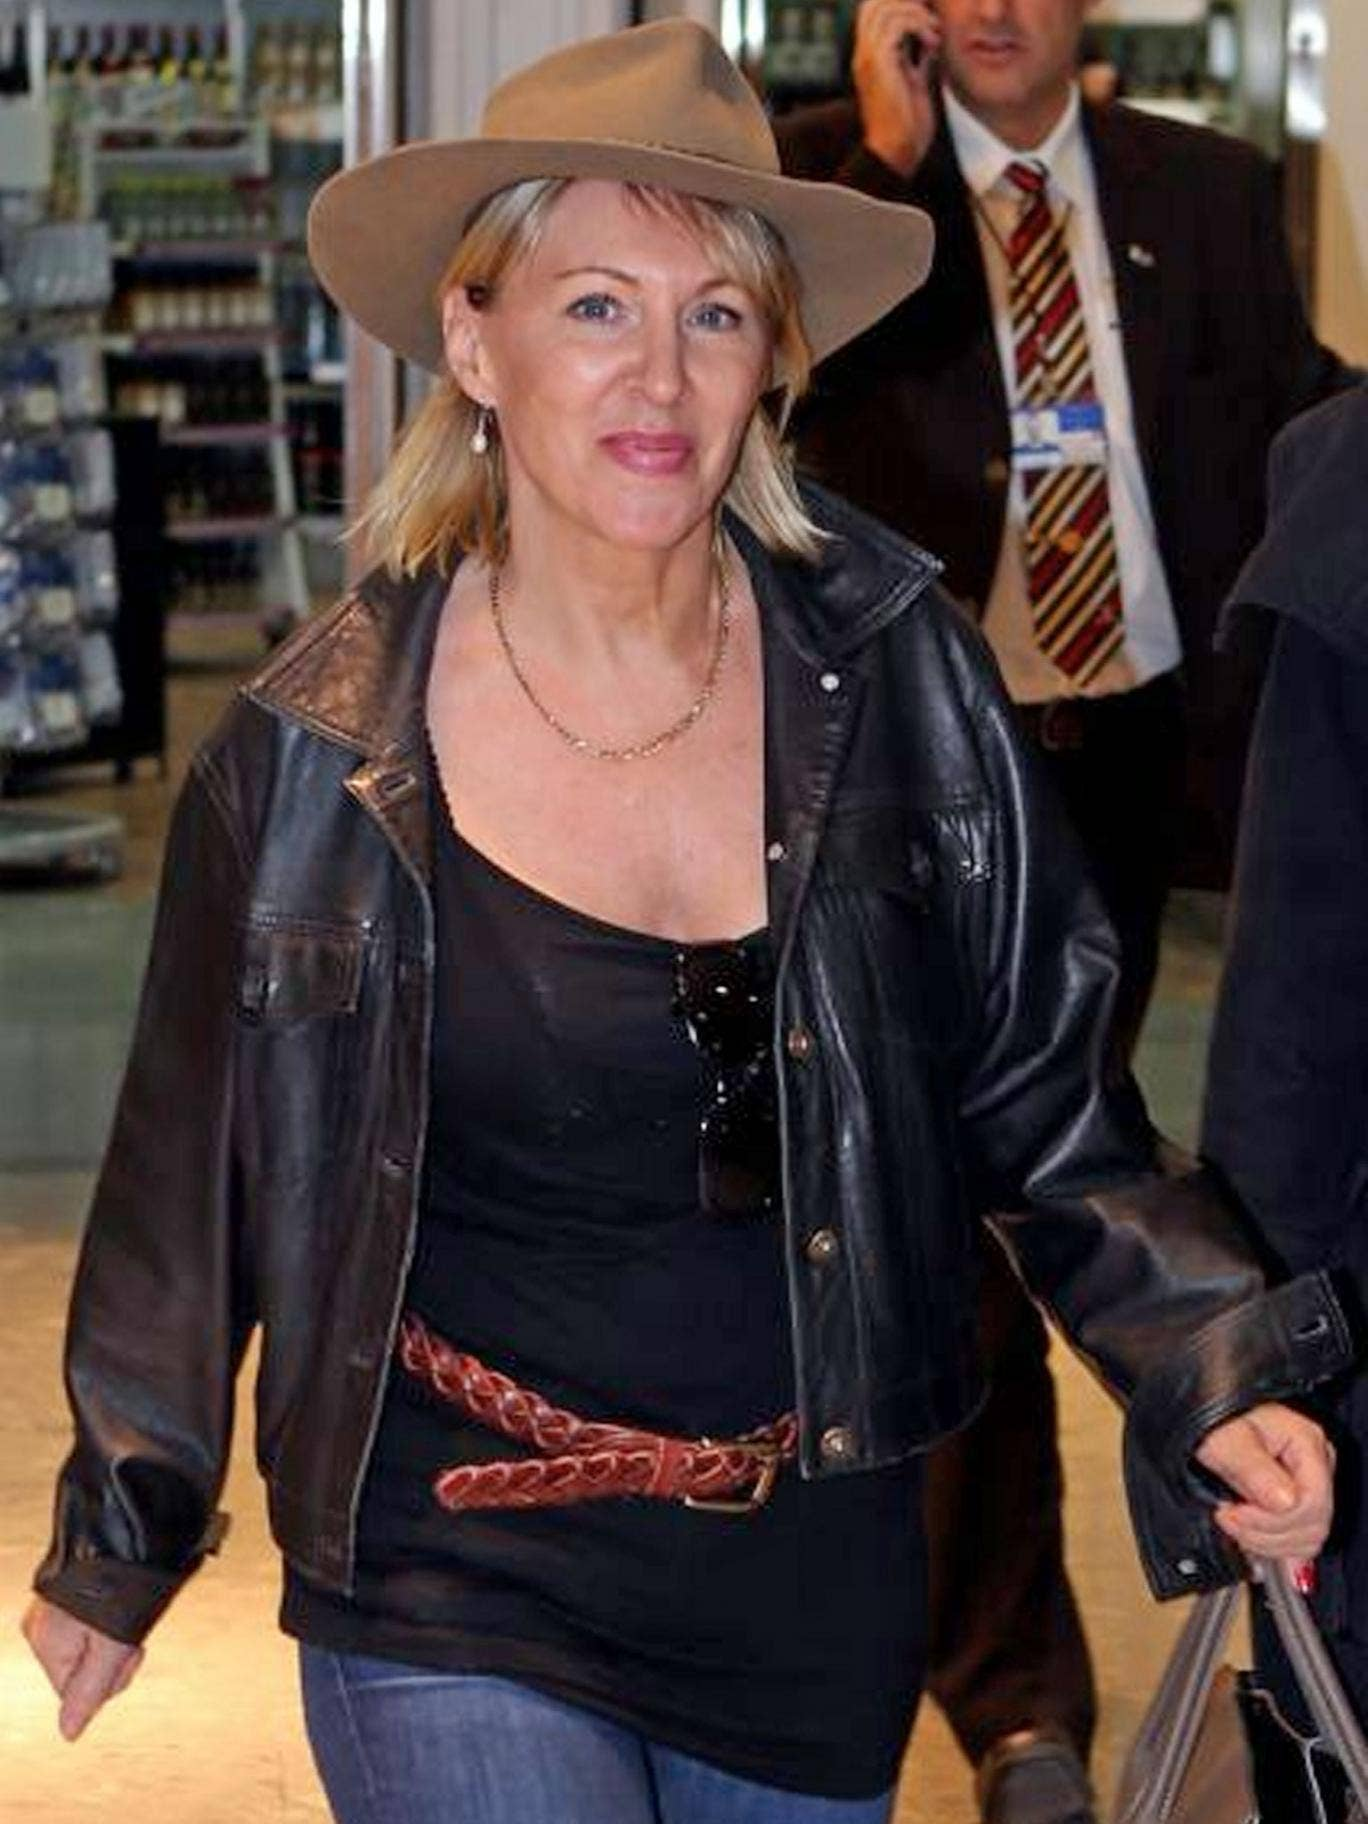 Nadine Dorries accused the MPs expenses watchdog of sexism